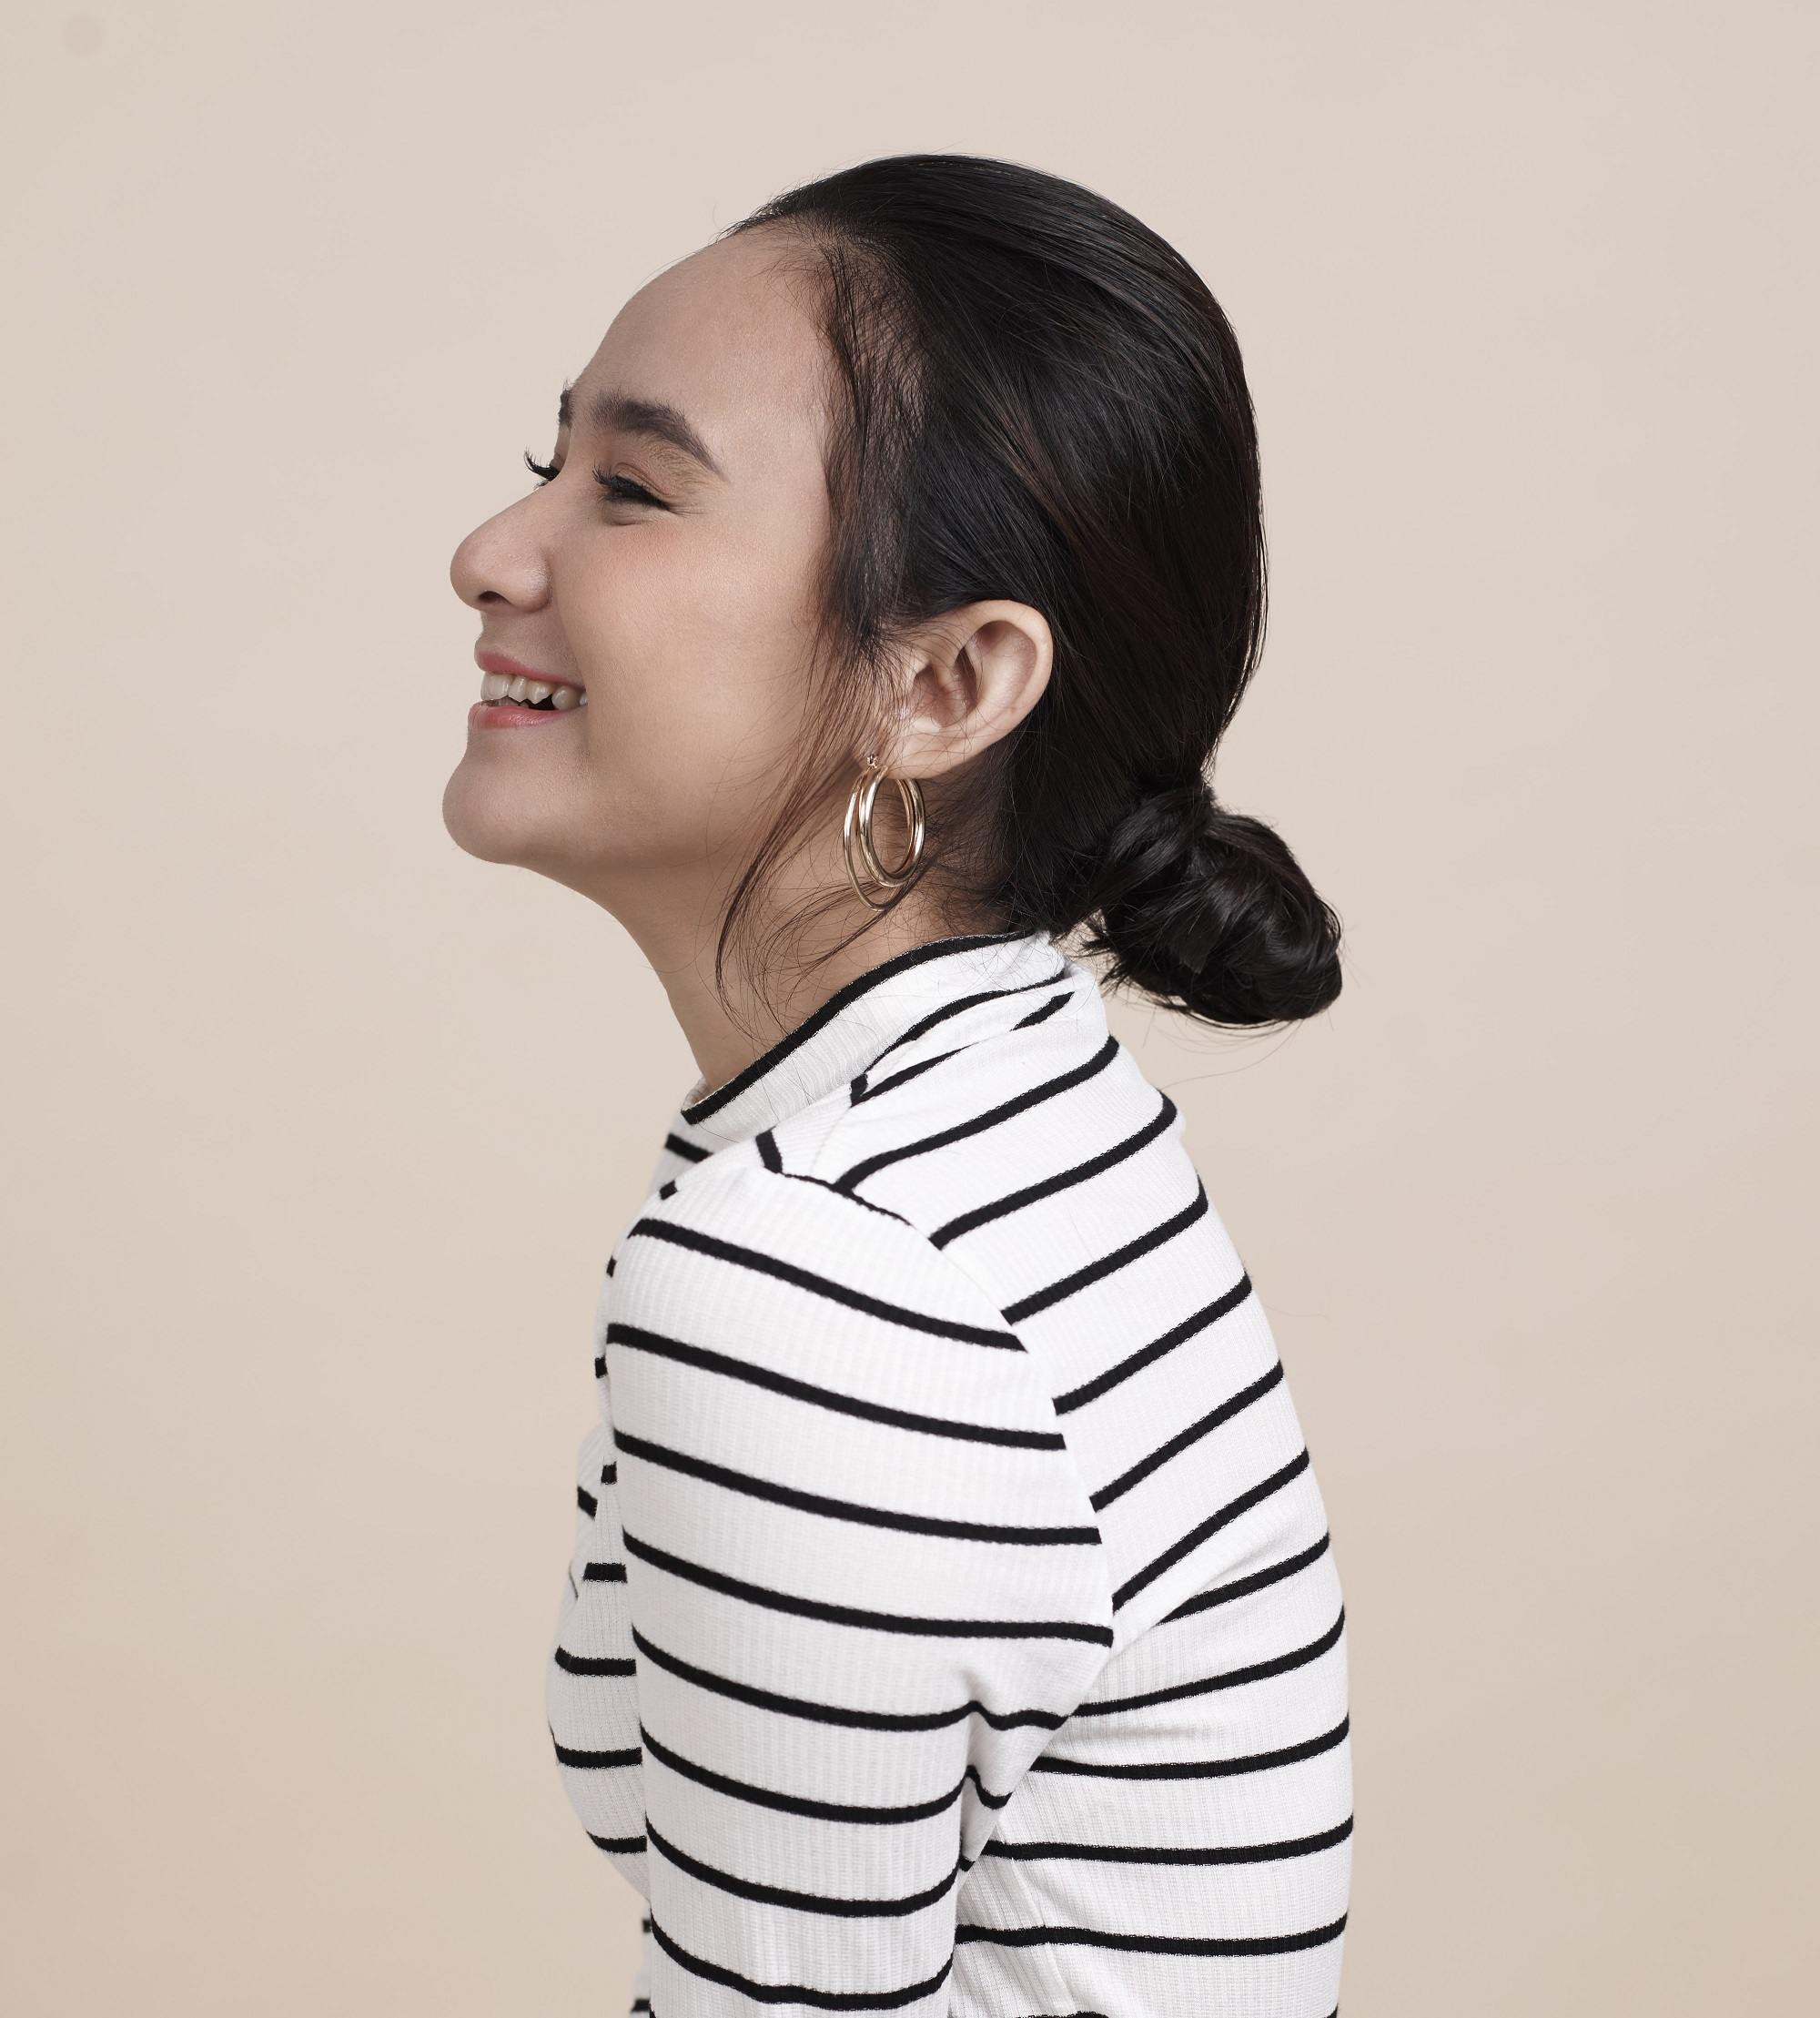 Romantic hairstyles for short hair: Side view shot of an Asian woman with short black hair in a low bun